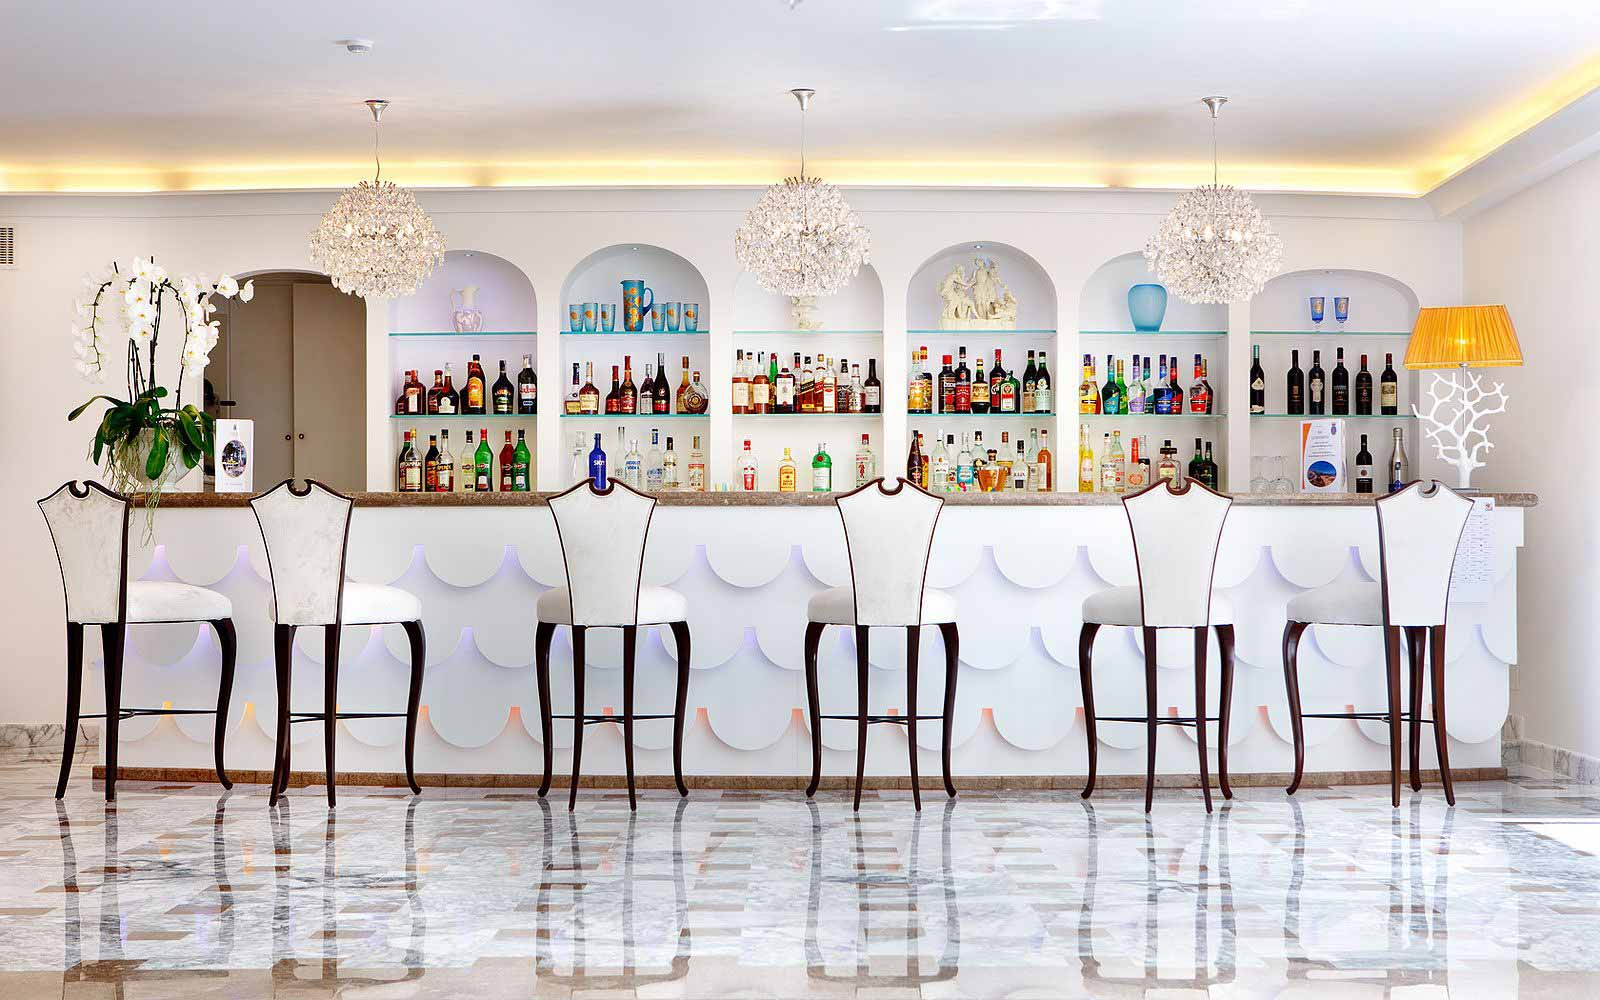 American Bar at the Grand Hotel La Favorita